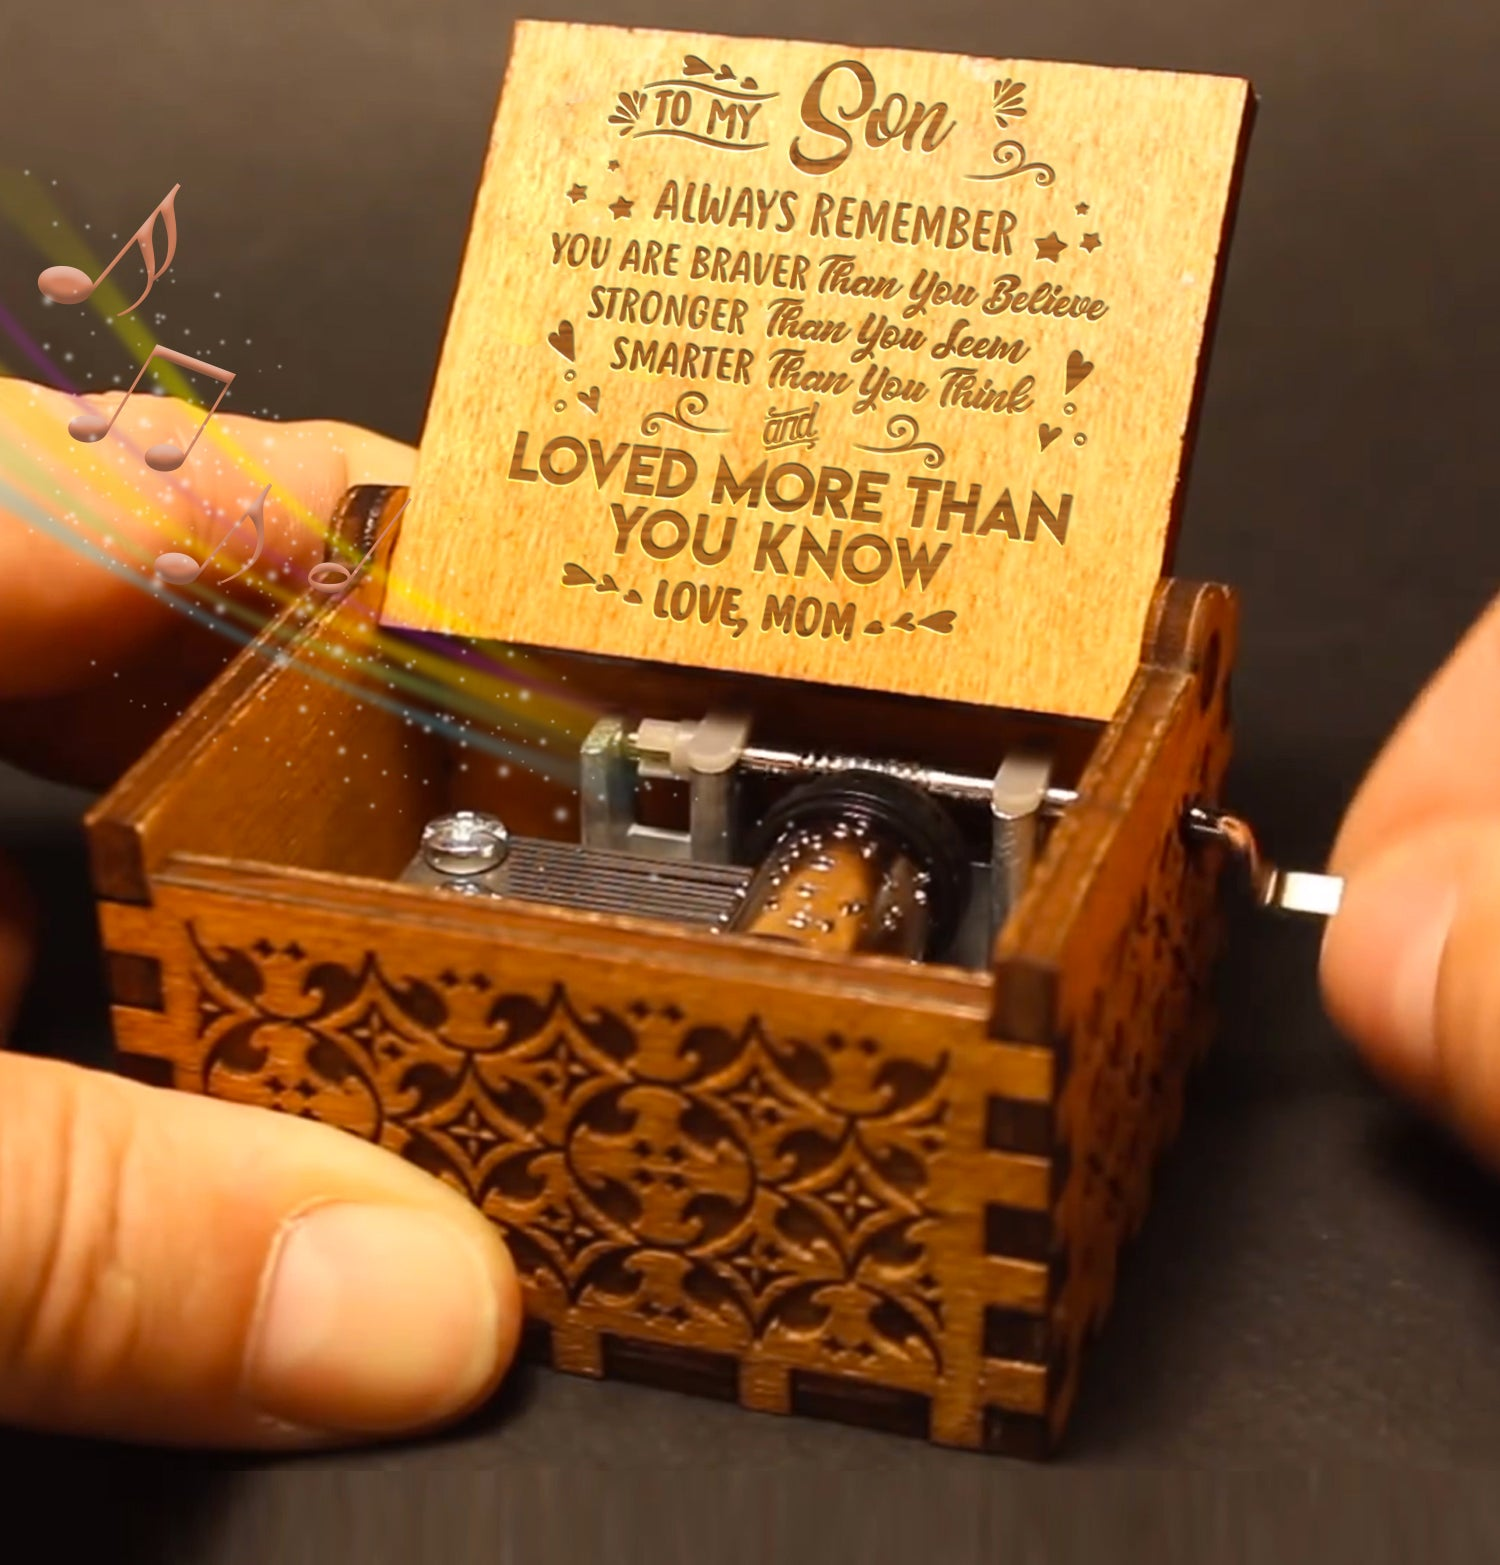 Mom To Son - You Are Loved More Than You Know - Engraved Music Box